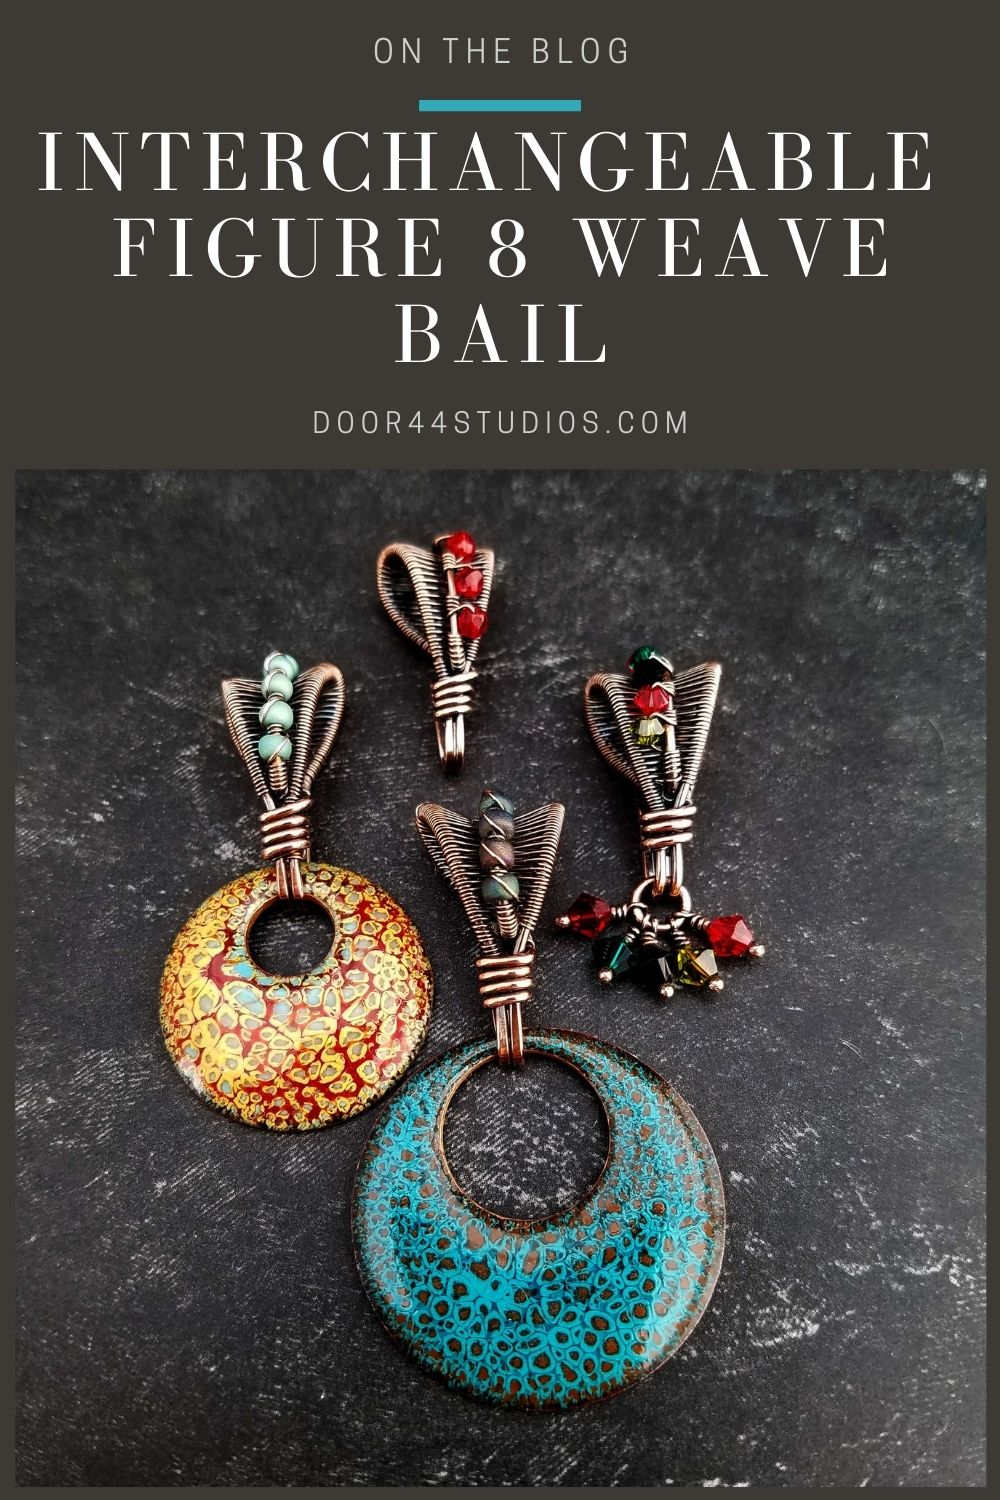 Have you ever wanted a pendant bail that would allow you to swap out different pendants and embellishments? If so, this interchangeable bail featuring the Figure 8 weave and a pretty beaded accent is the solution you've been looking for. Learn to make this versatile bail with our free tutorial.